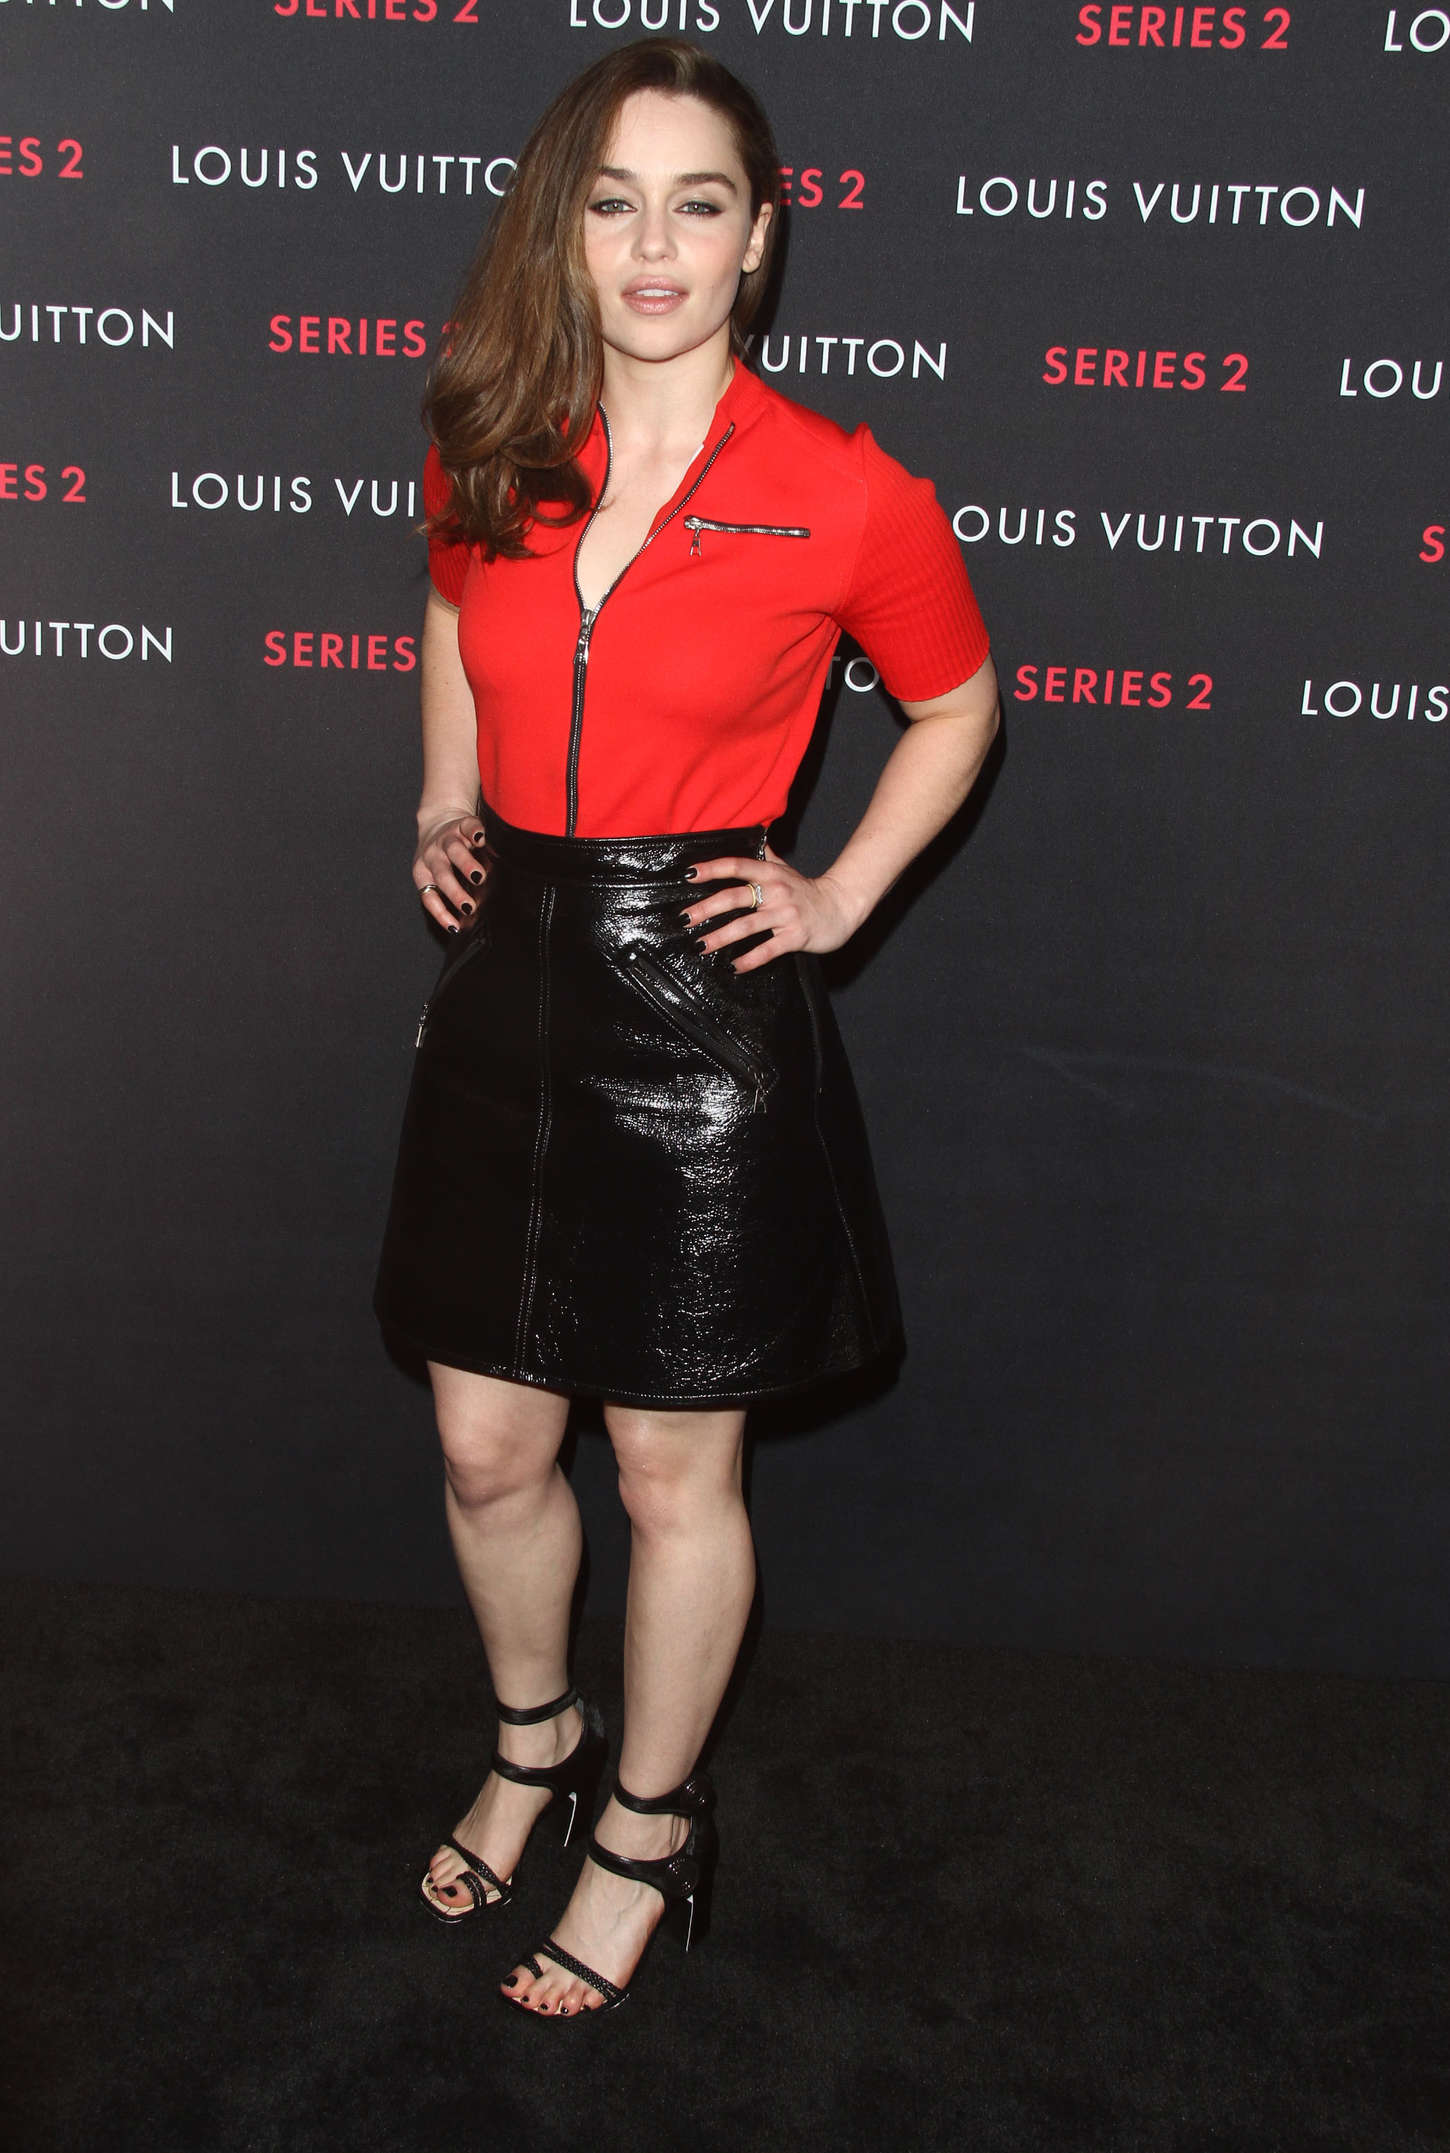 Emilia Clarke 2015 : Emilia Clarke: Louis Vuitton Series 2 The Exhibition -06